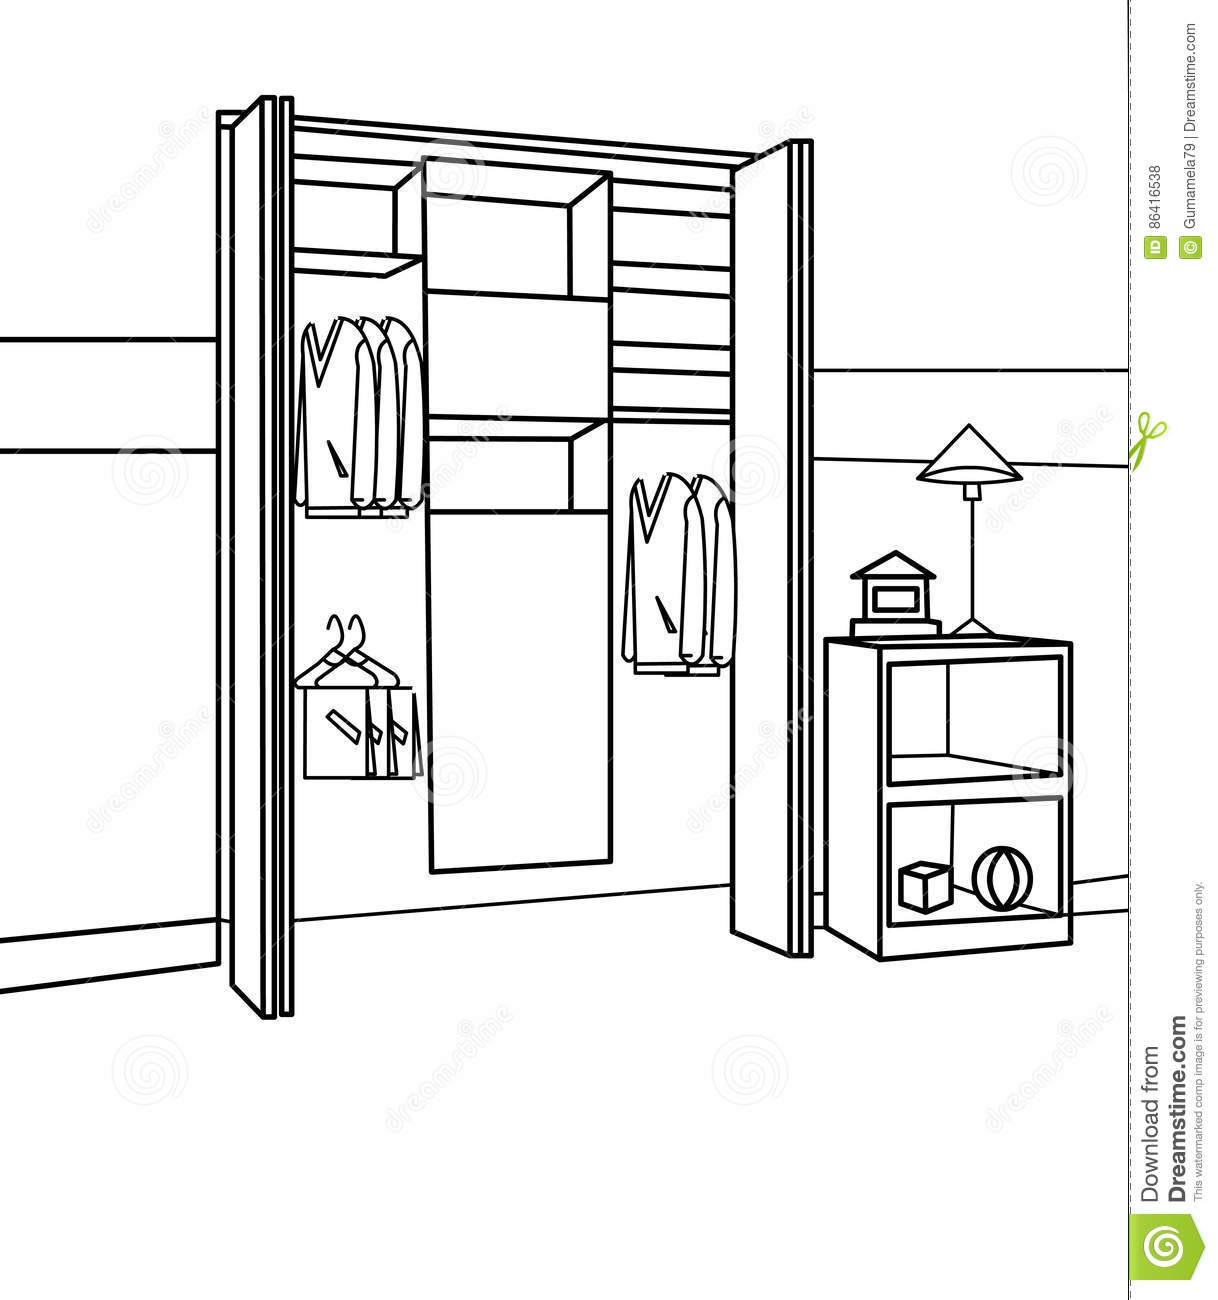 Coloring pages furniture - Royalty Free Illustration Download Furniture Coloring Page